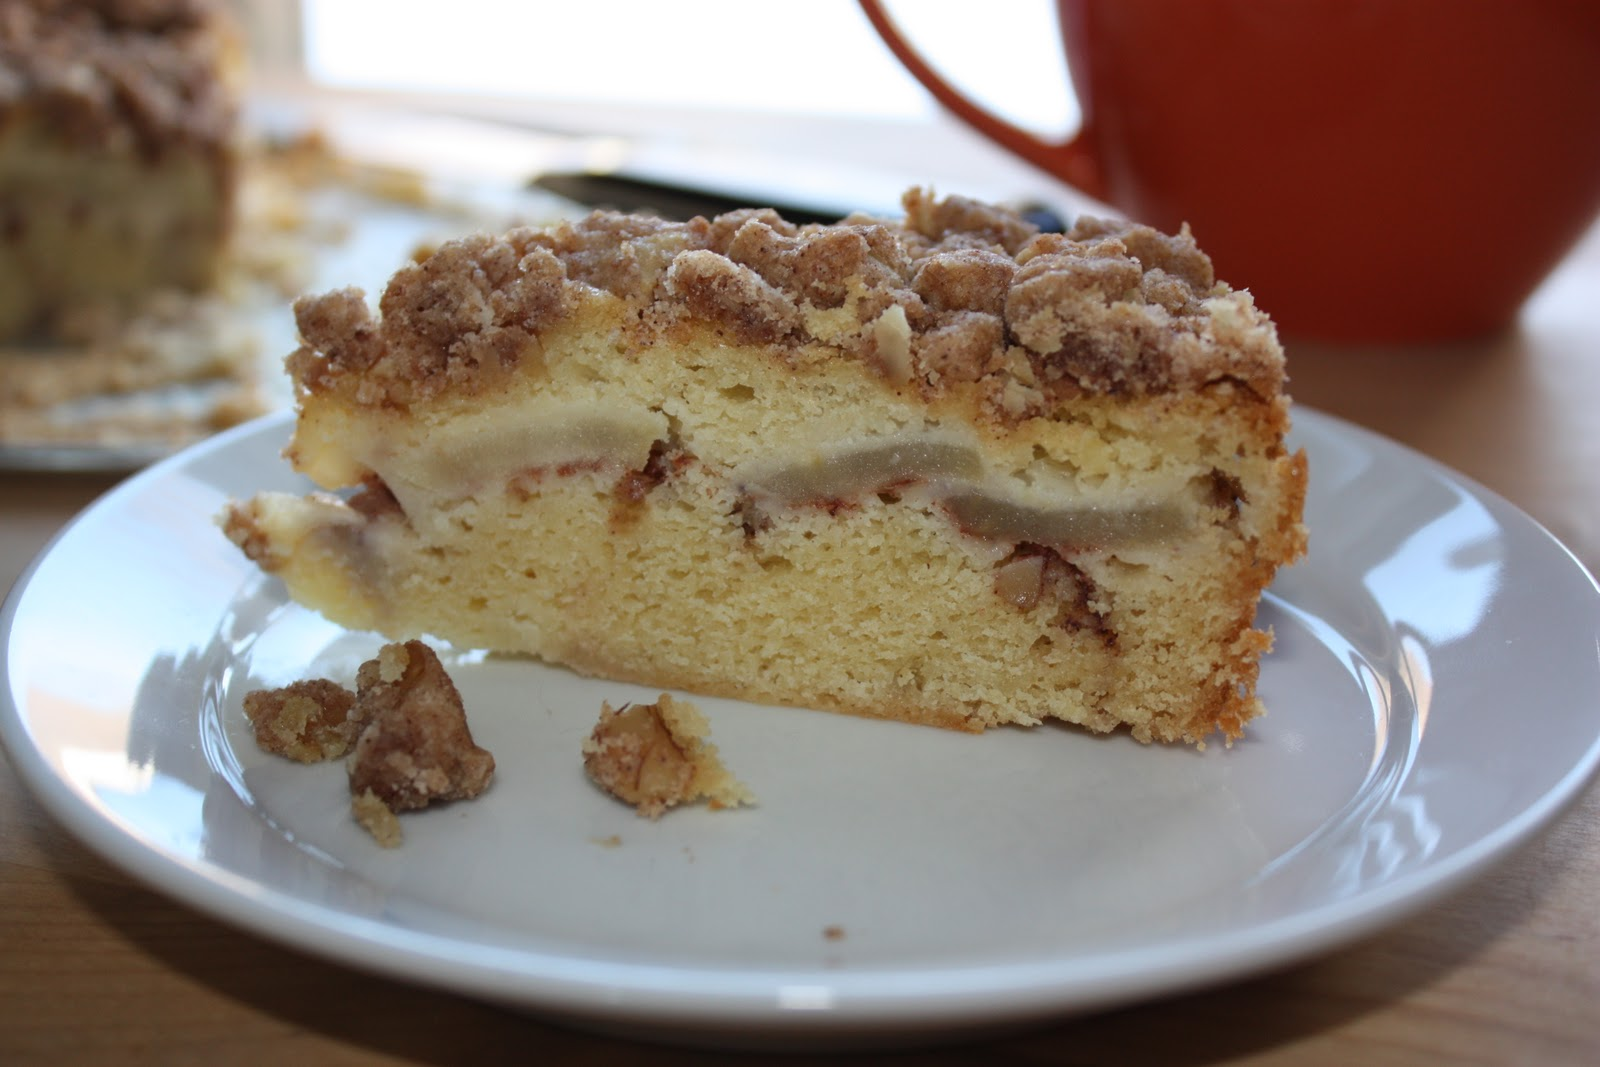 Danger Kitten Bakes: Rose's Apple Sour Cream Crumb Cake